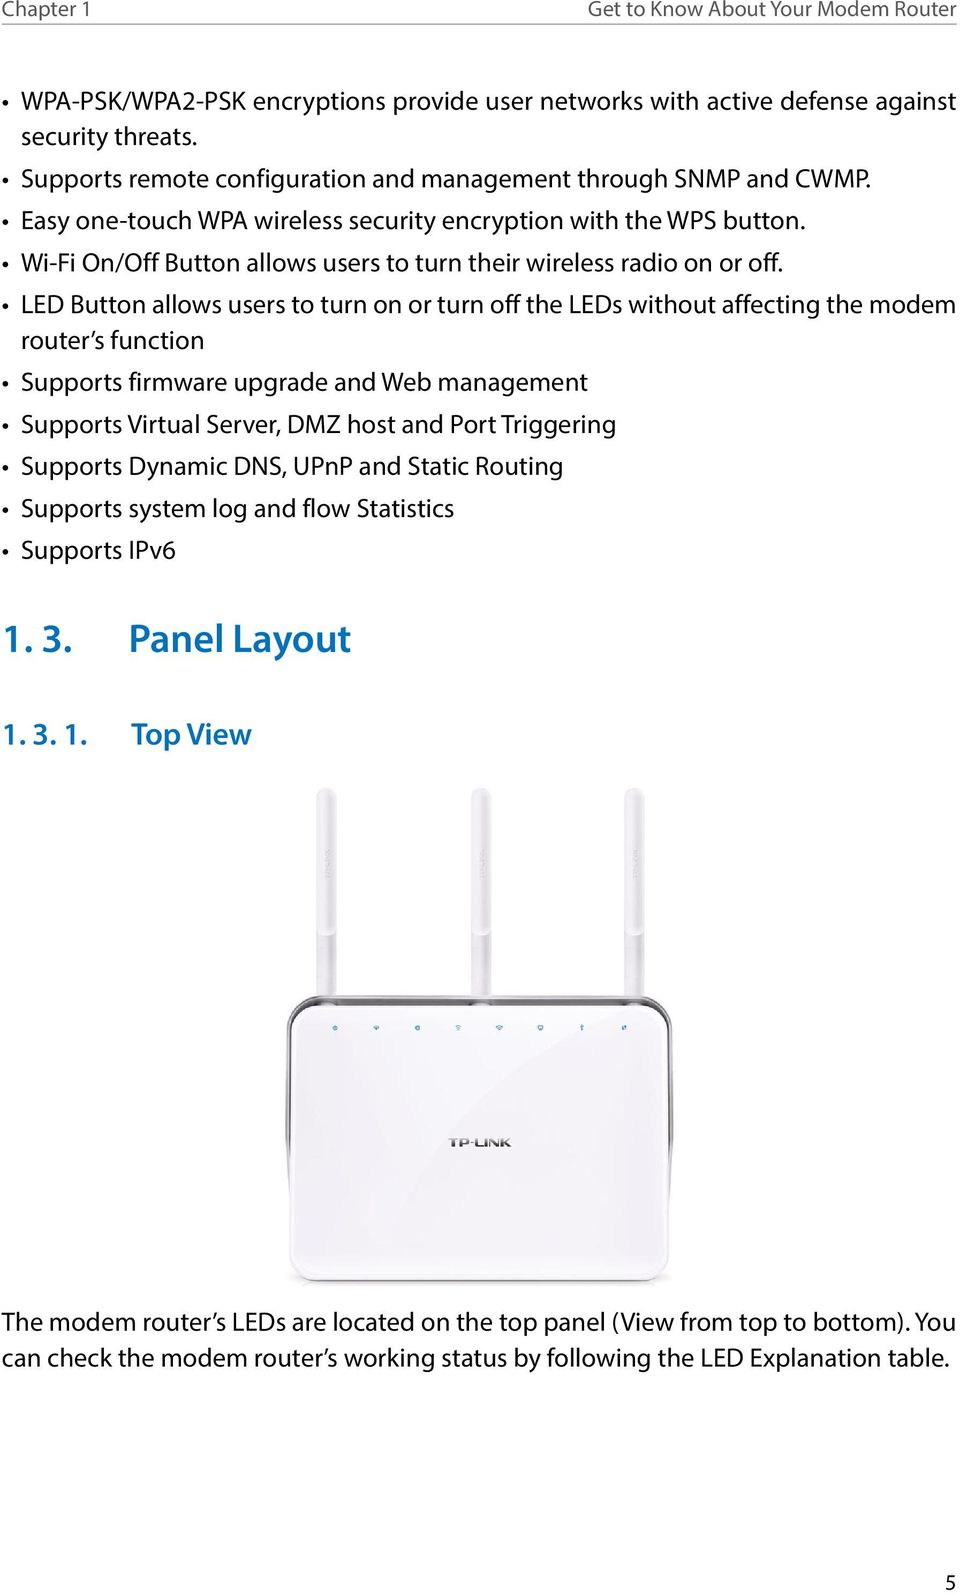 User Guide Ac750 Wireless Dual Band Gigabit Vdsl2 Modem Router Pdf Diagram Wi Fi On Off Button Allows Users To Turn Their Radio Or